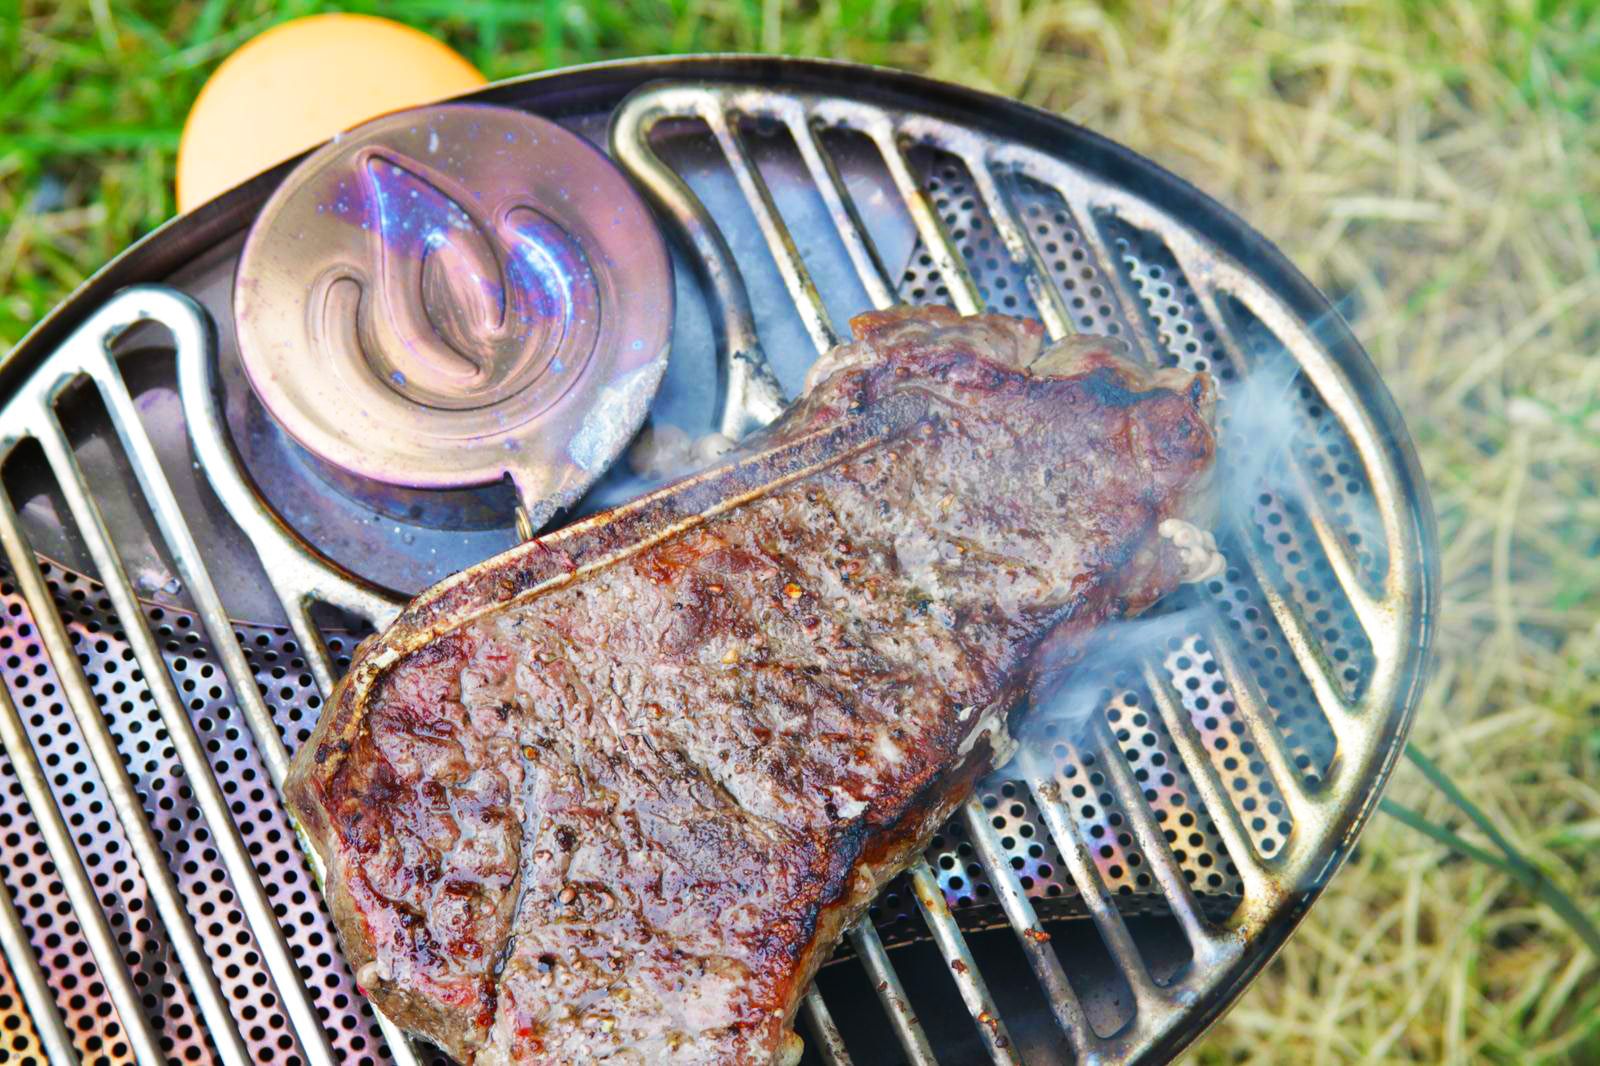 BioLite Portable Grill and steak make a good pair